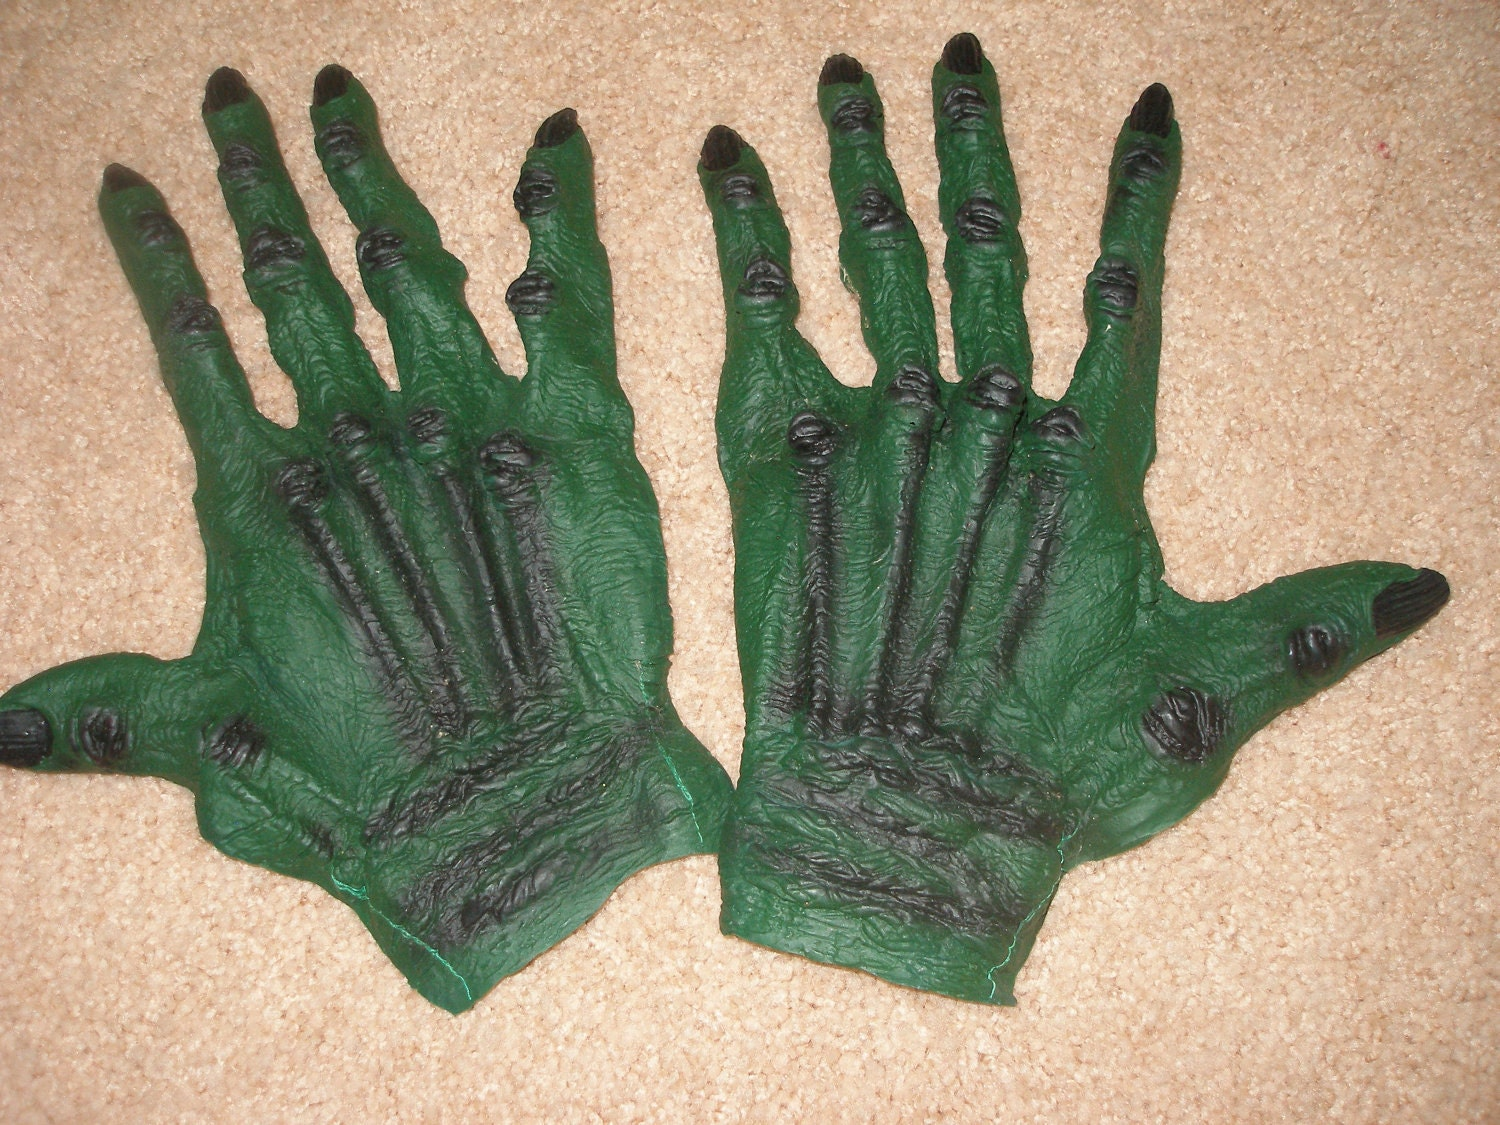 Halloween Monster Hands Costume Creature from the Black Lagoon